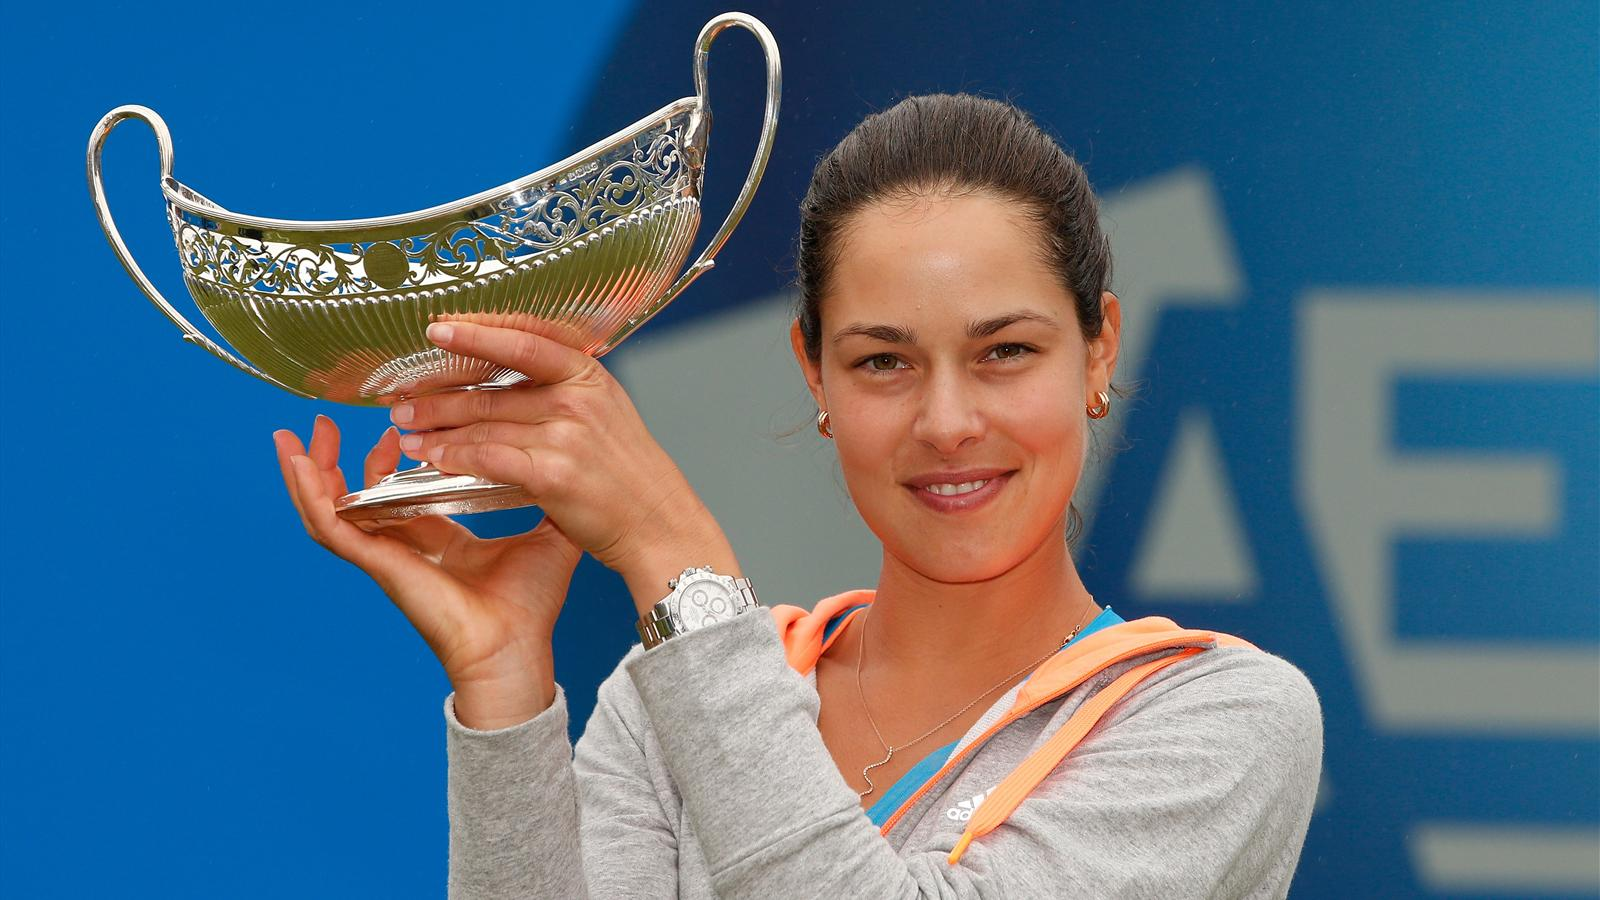 Ana Ivanovic of Serbia holds up the Maud Watson trophy after beating Barbora Zahlavova Strycova of Czech Republic in the final of the WTA AEGON Classic (AFP)